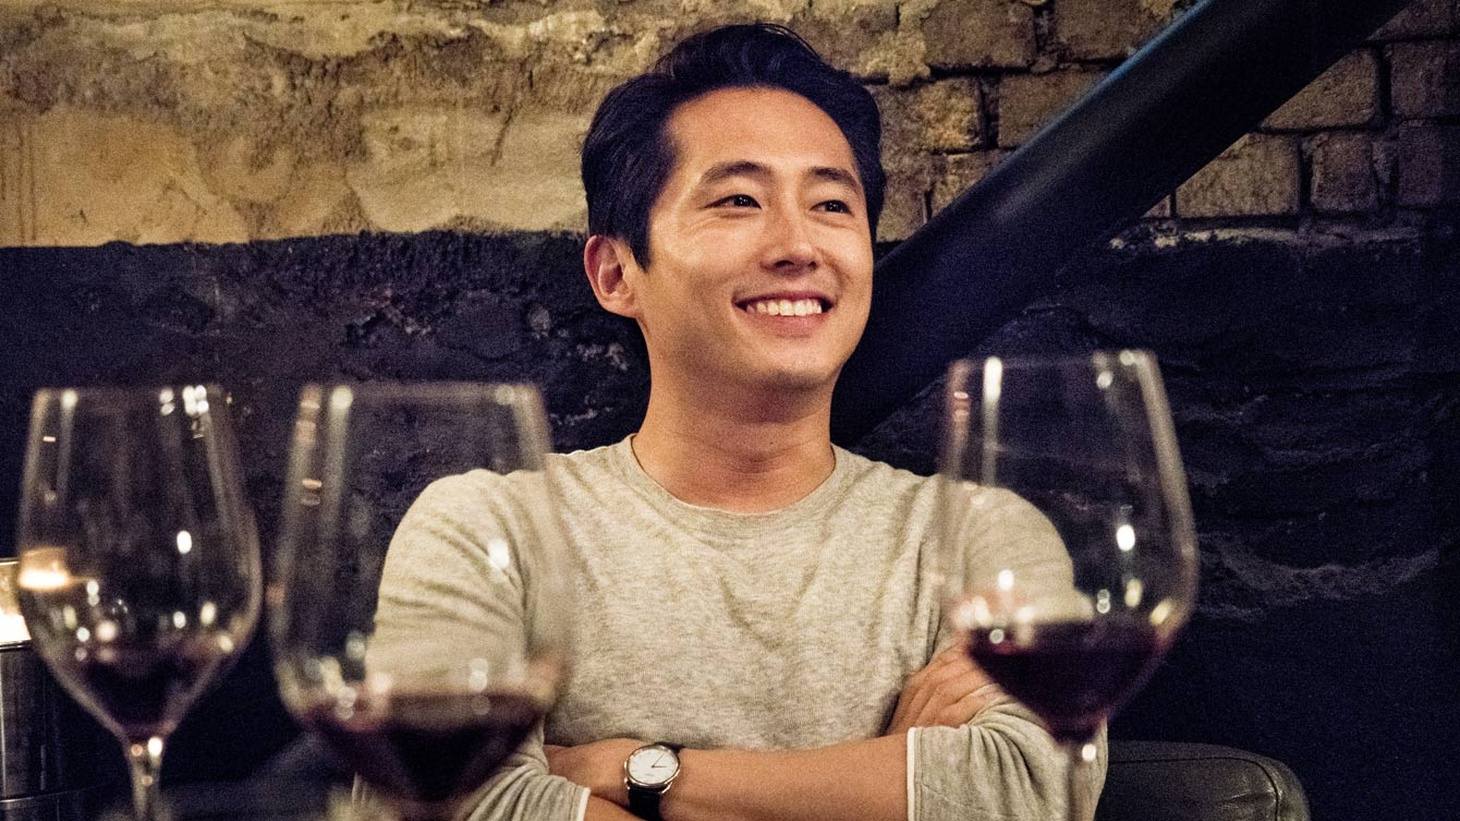 Actor Steven Yeun in BURNING, directed by Lee Chang-dong. Courtesy of Well Go USA.